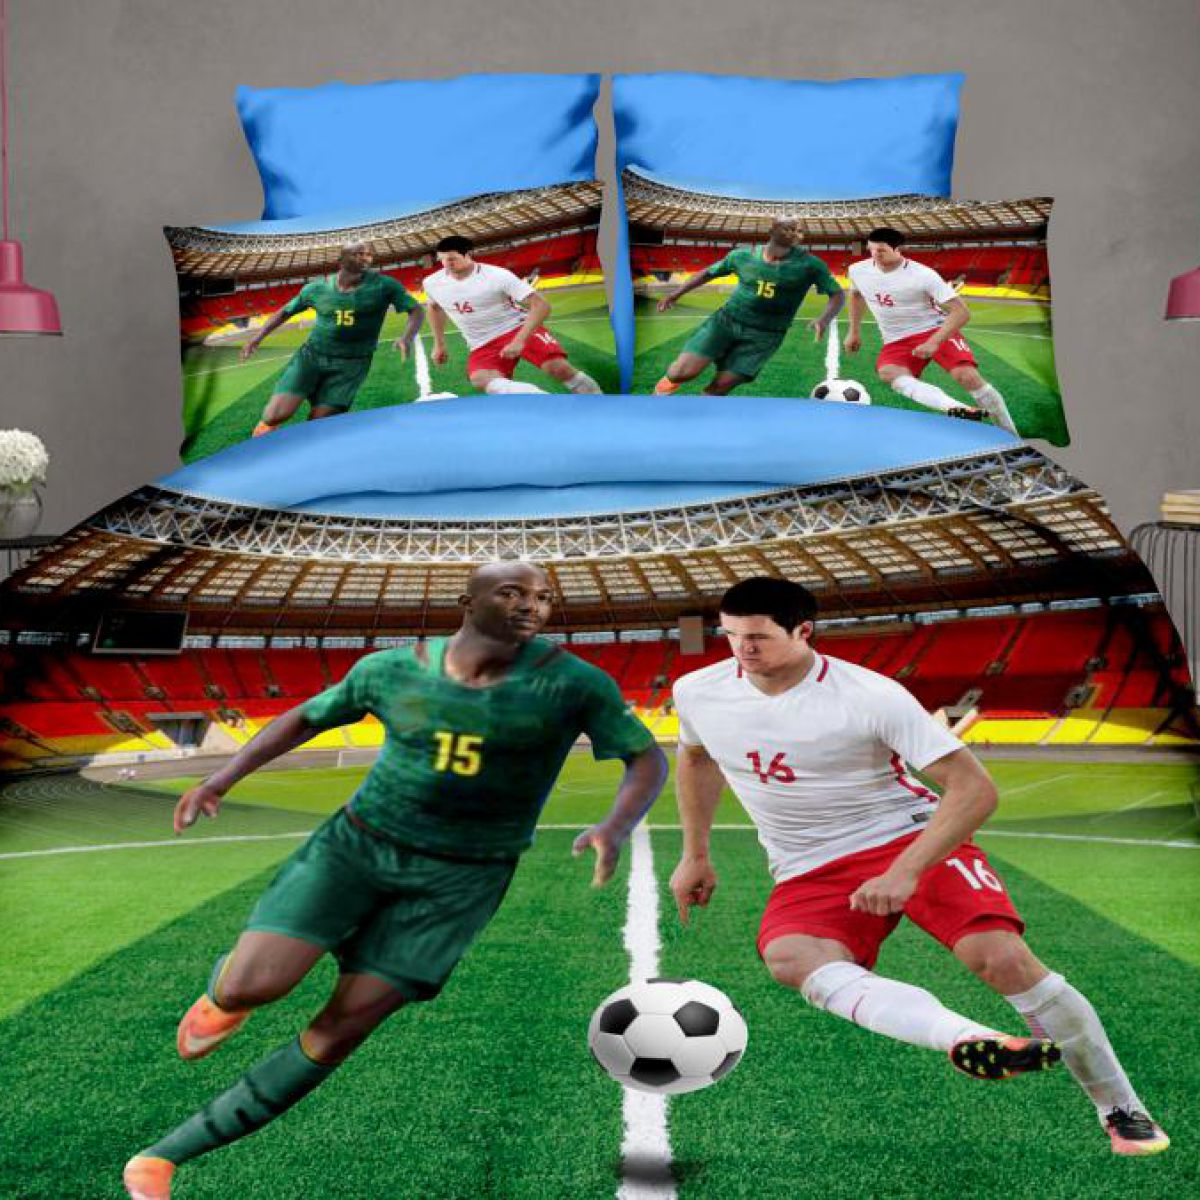 3D Beddings - Febe - Football - FPW-402-01 - 140x200 cm - 2 pcs